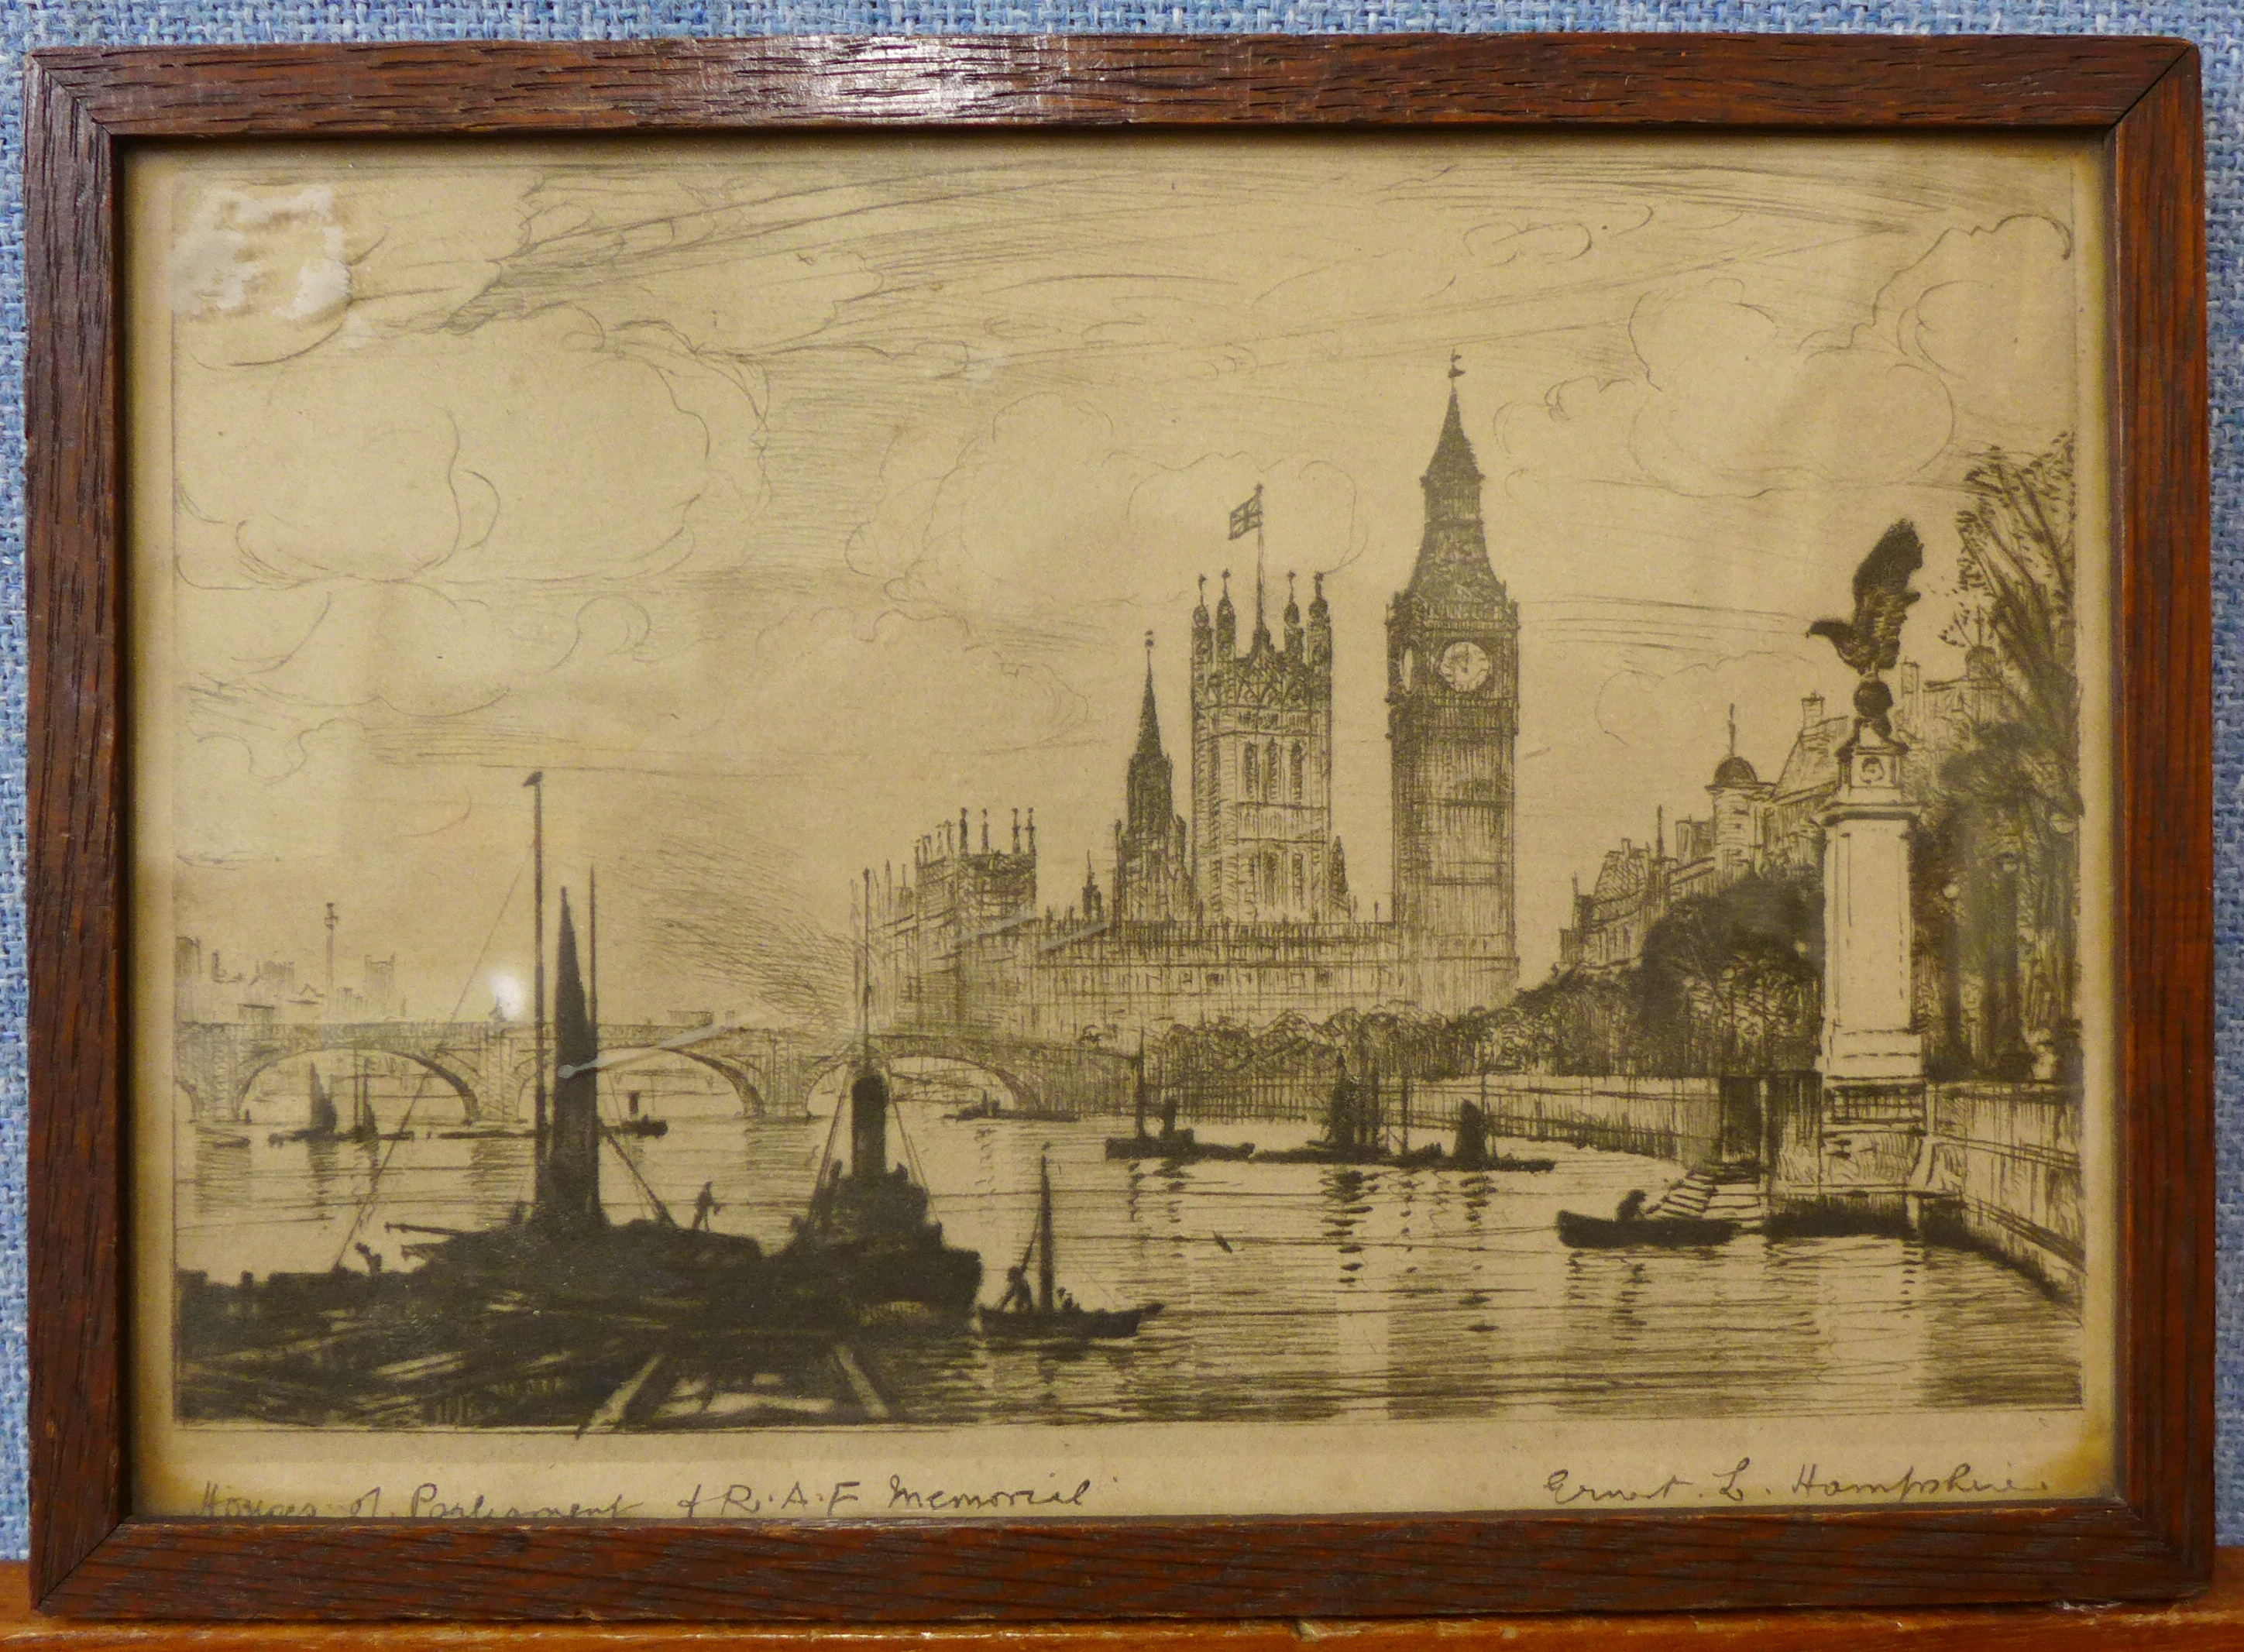 Lot 33 - Ernest L. Hampshire, Houses of Parliament and R.A.F.